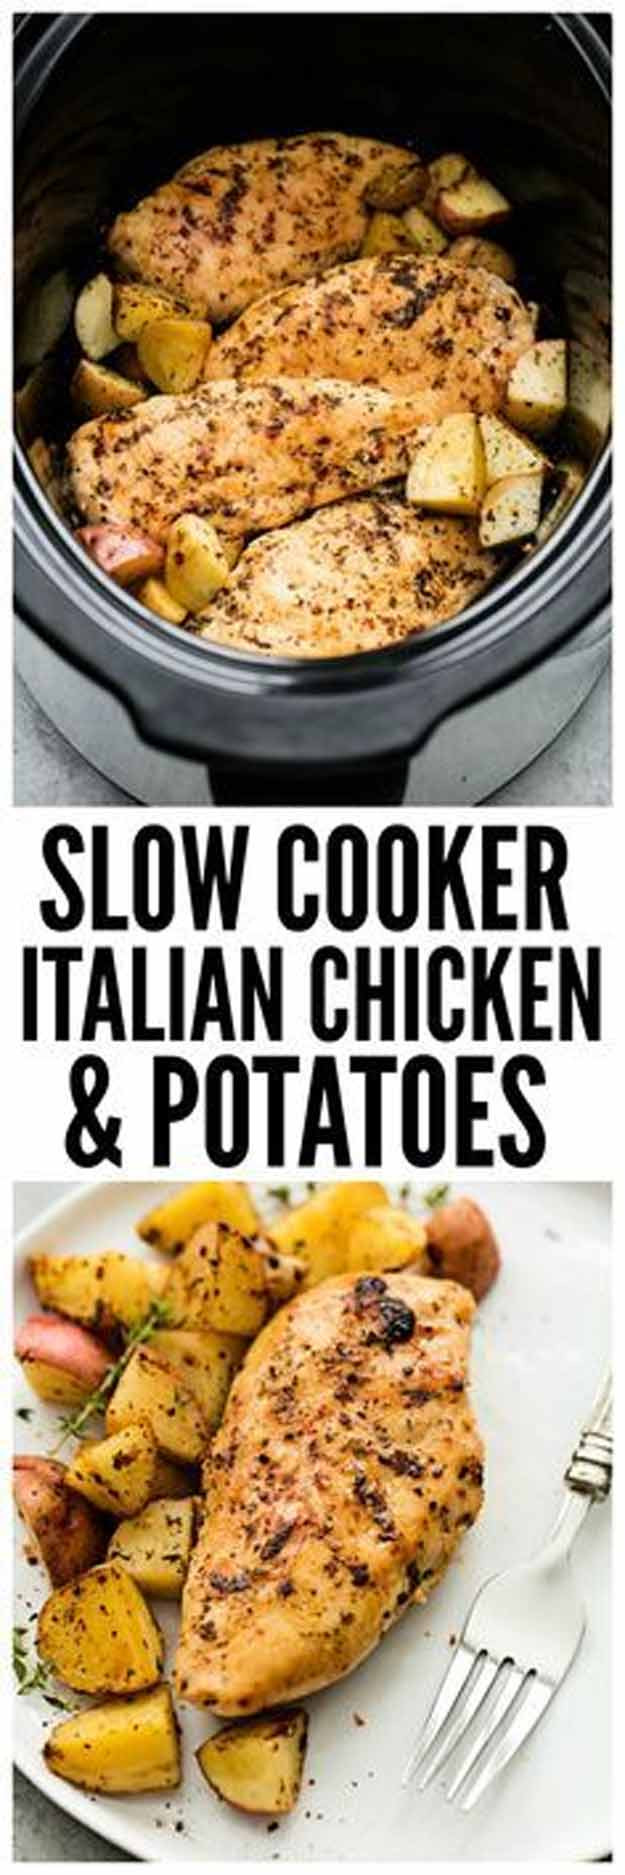 Healthy Slow Cooker Chicken Recipes For Weight Loss  38 More Healthy Dinner Recipes The Goddess